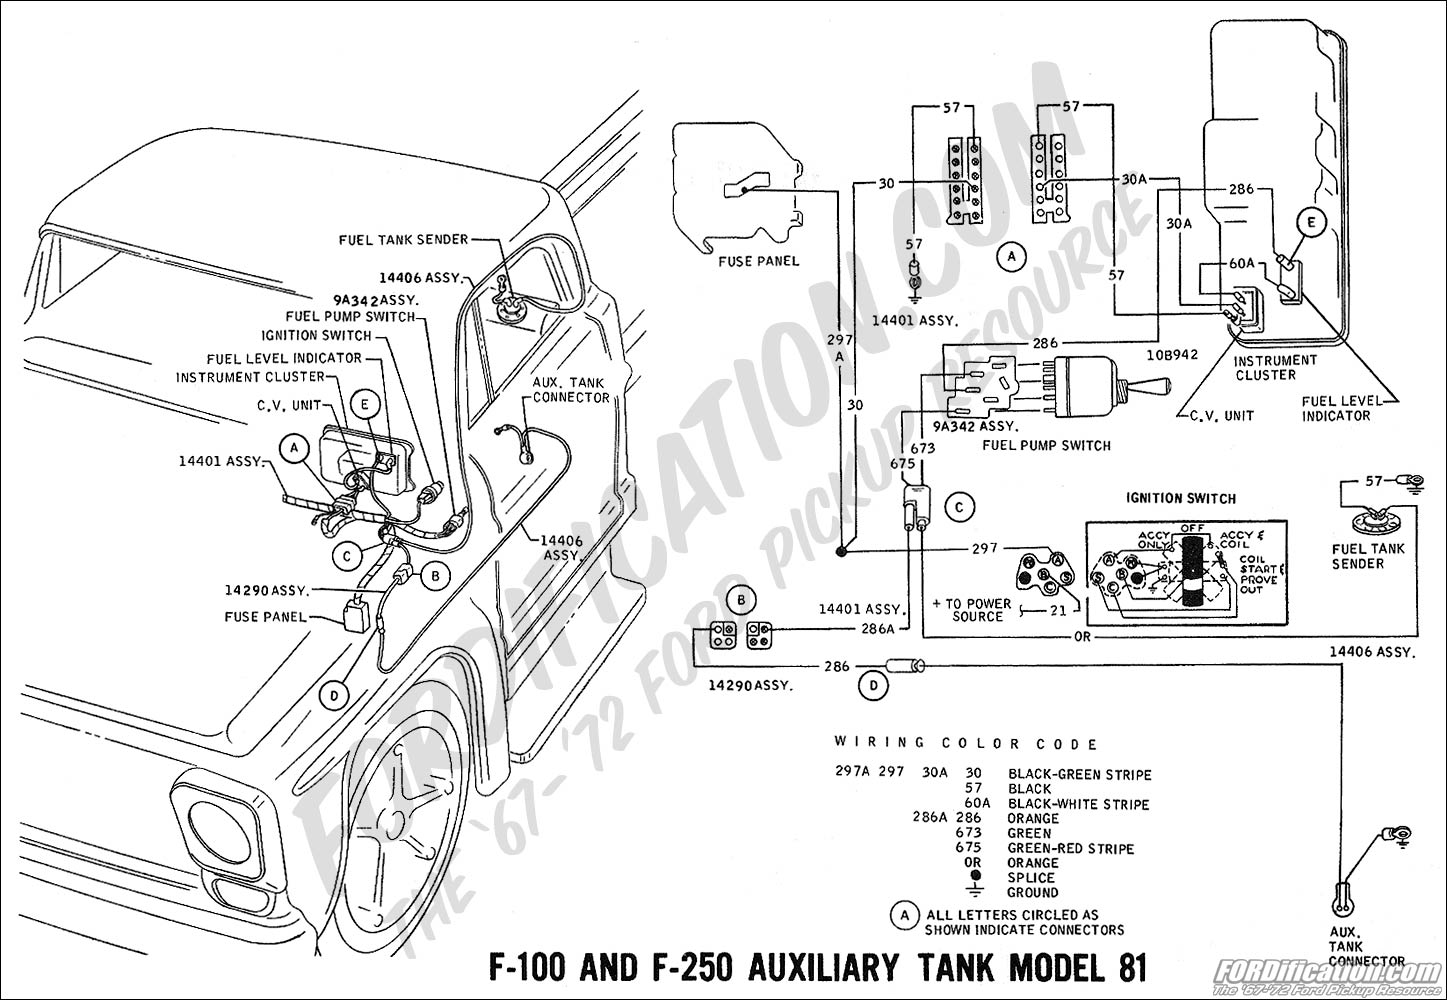 78 f250 fuse diagram wiring data diagram1978 f 250 fuse box wiring data diagram 06 f250 fuse box diagram 250 dash switches